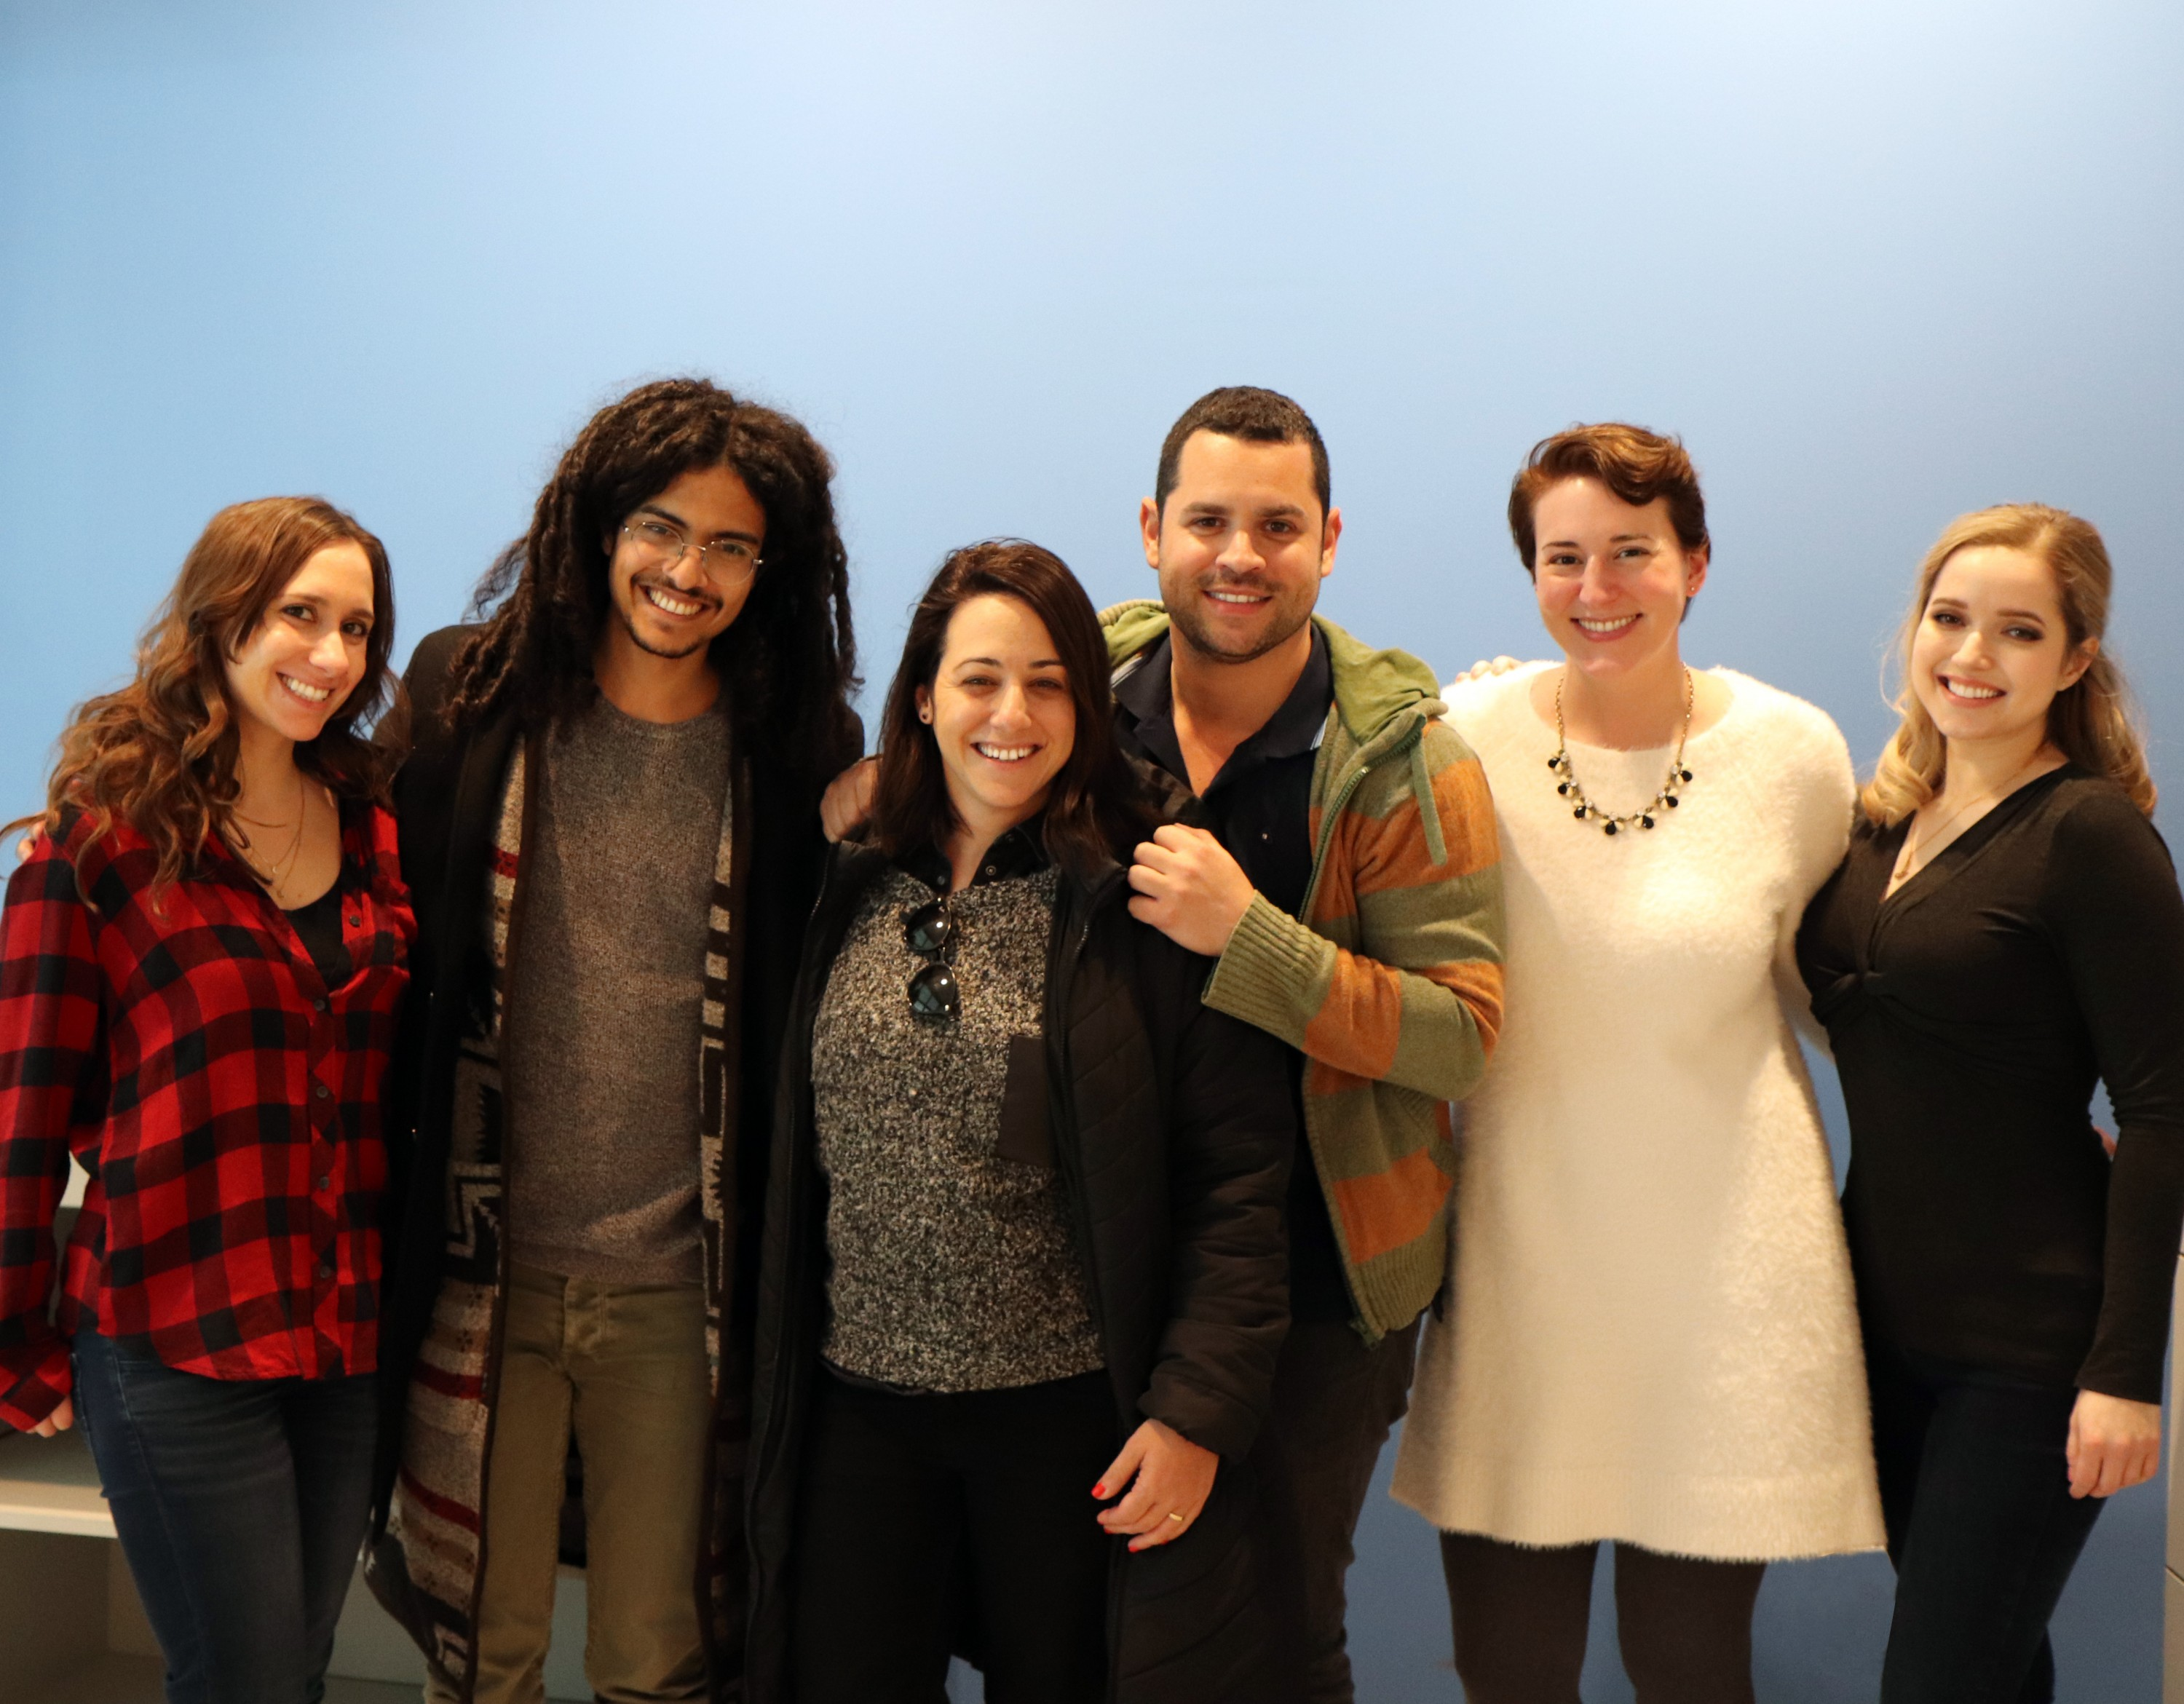 From left: Ashley Jacobs, Ben Yaffet, Michal Shahaf, Or Taicher, Kali Foxman and Miriam Anzovin (Photo: Craig Byer)